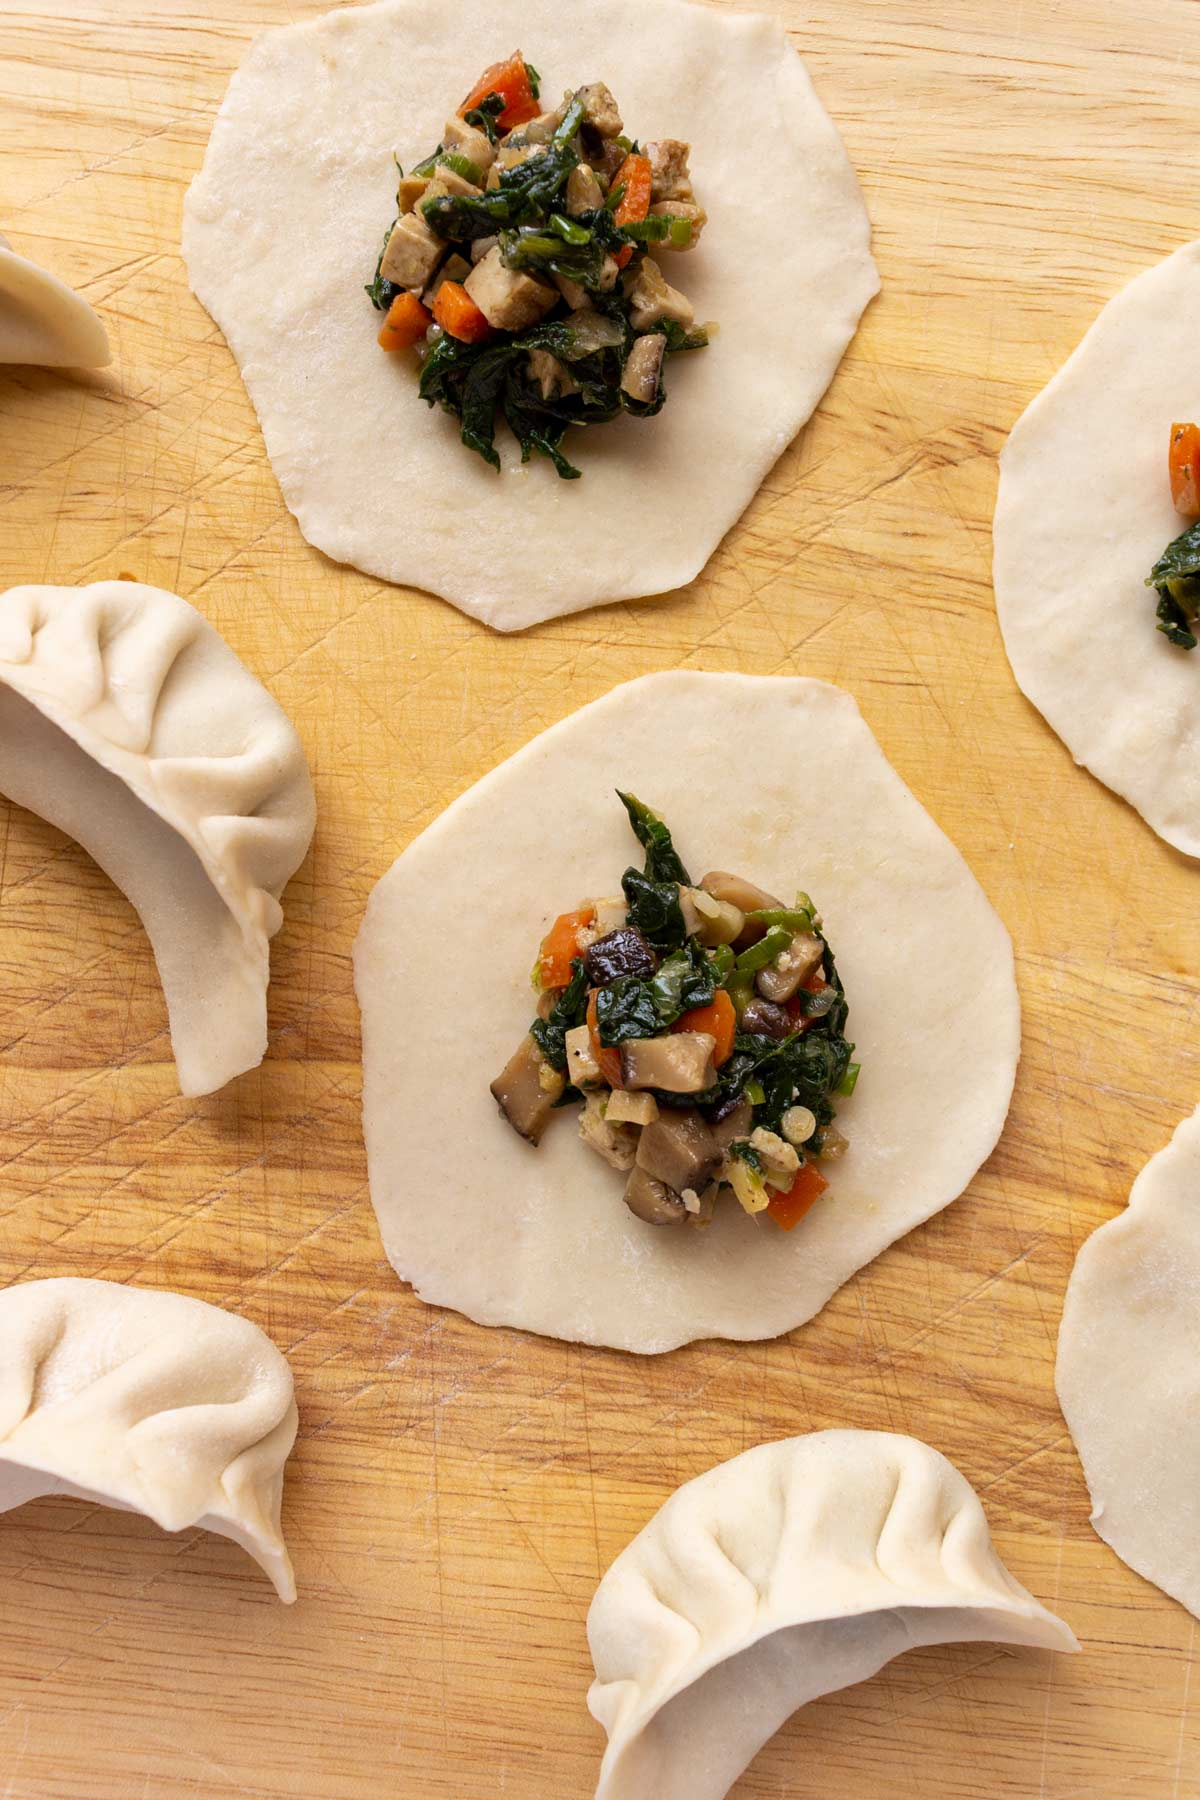 Flat circles of dough topped with veggie filling, and a few pleated dumplings.